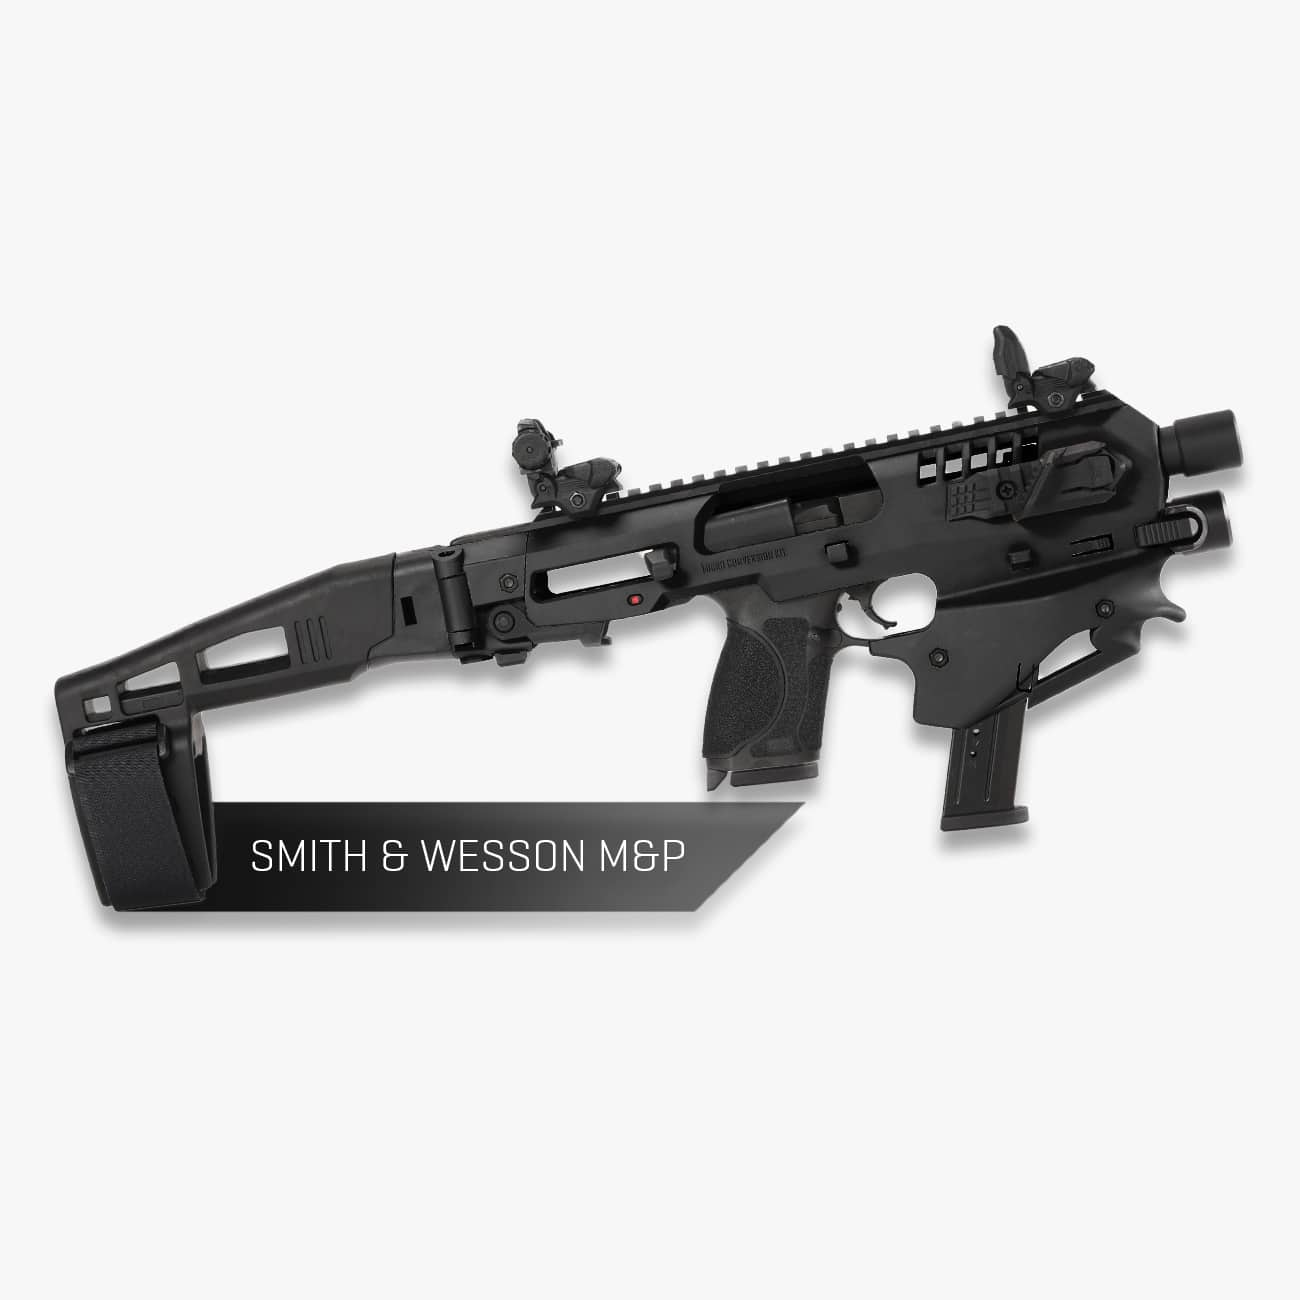 MCKSWMP   Micro Conversion Kit (Smith & Wesson)